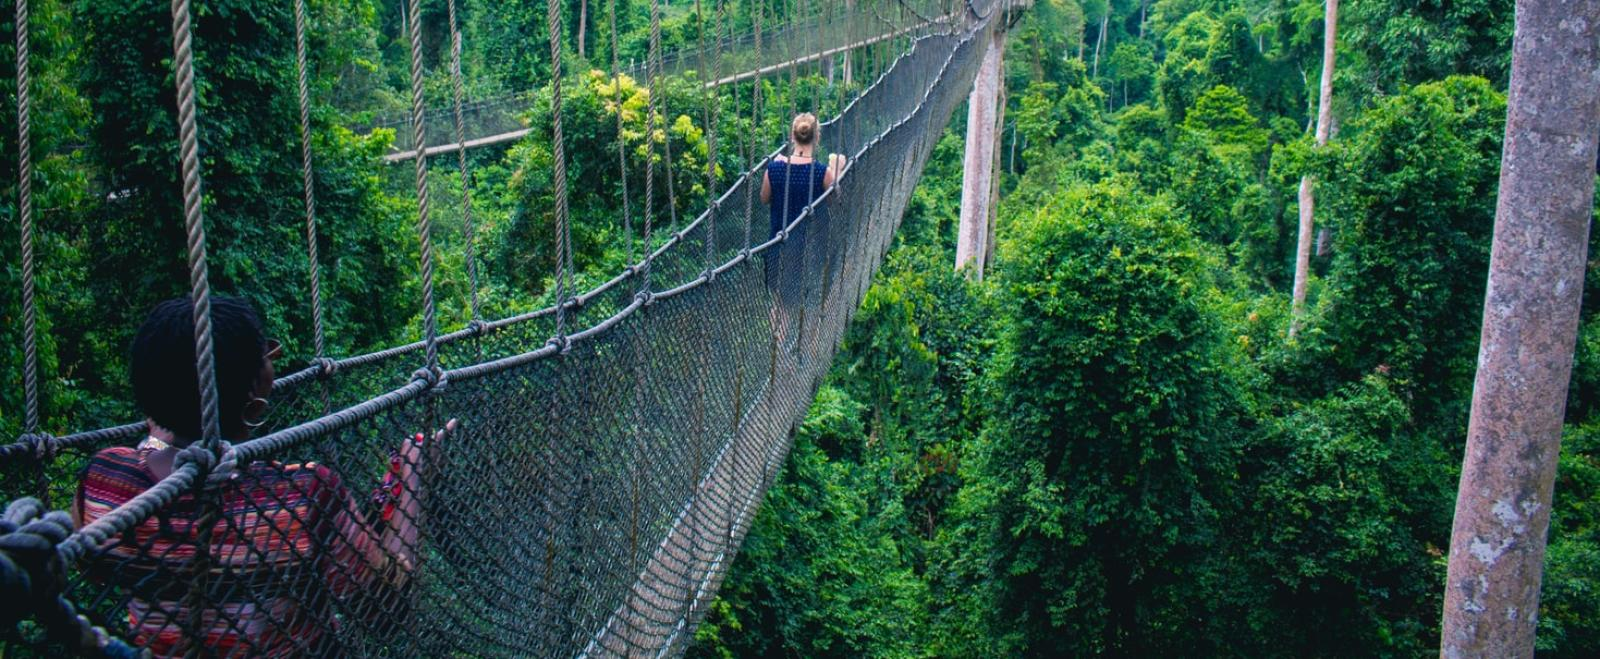 Visitors walk along the canopy bridge in Ghana's rainforest